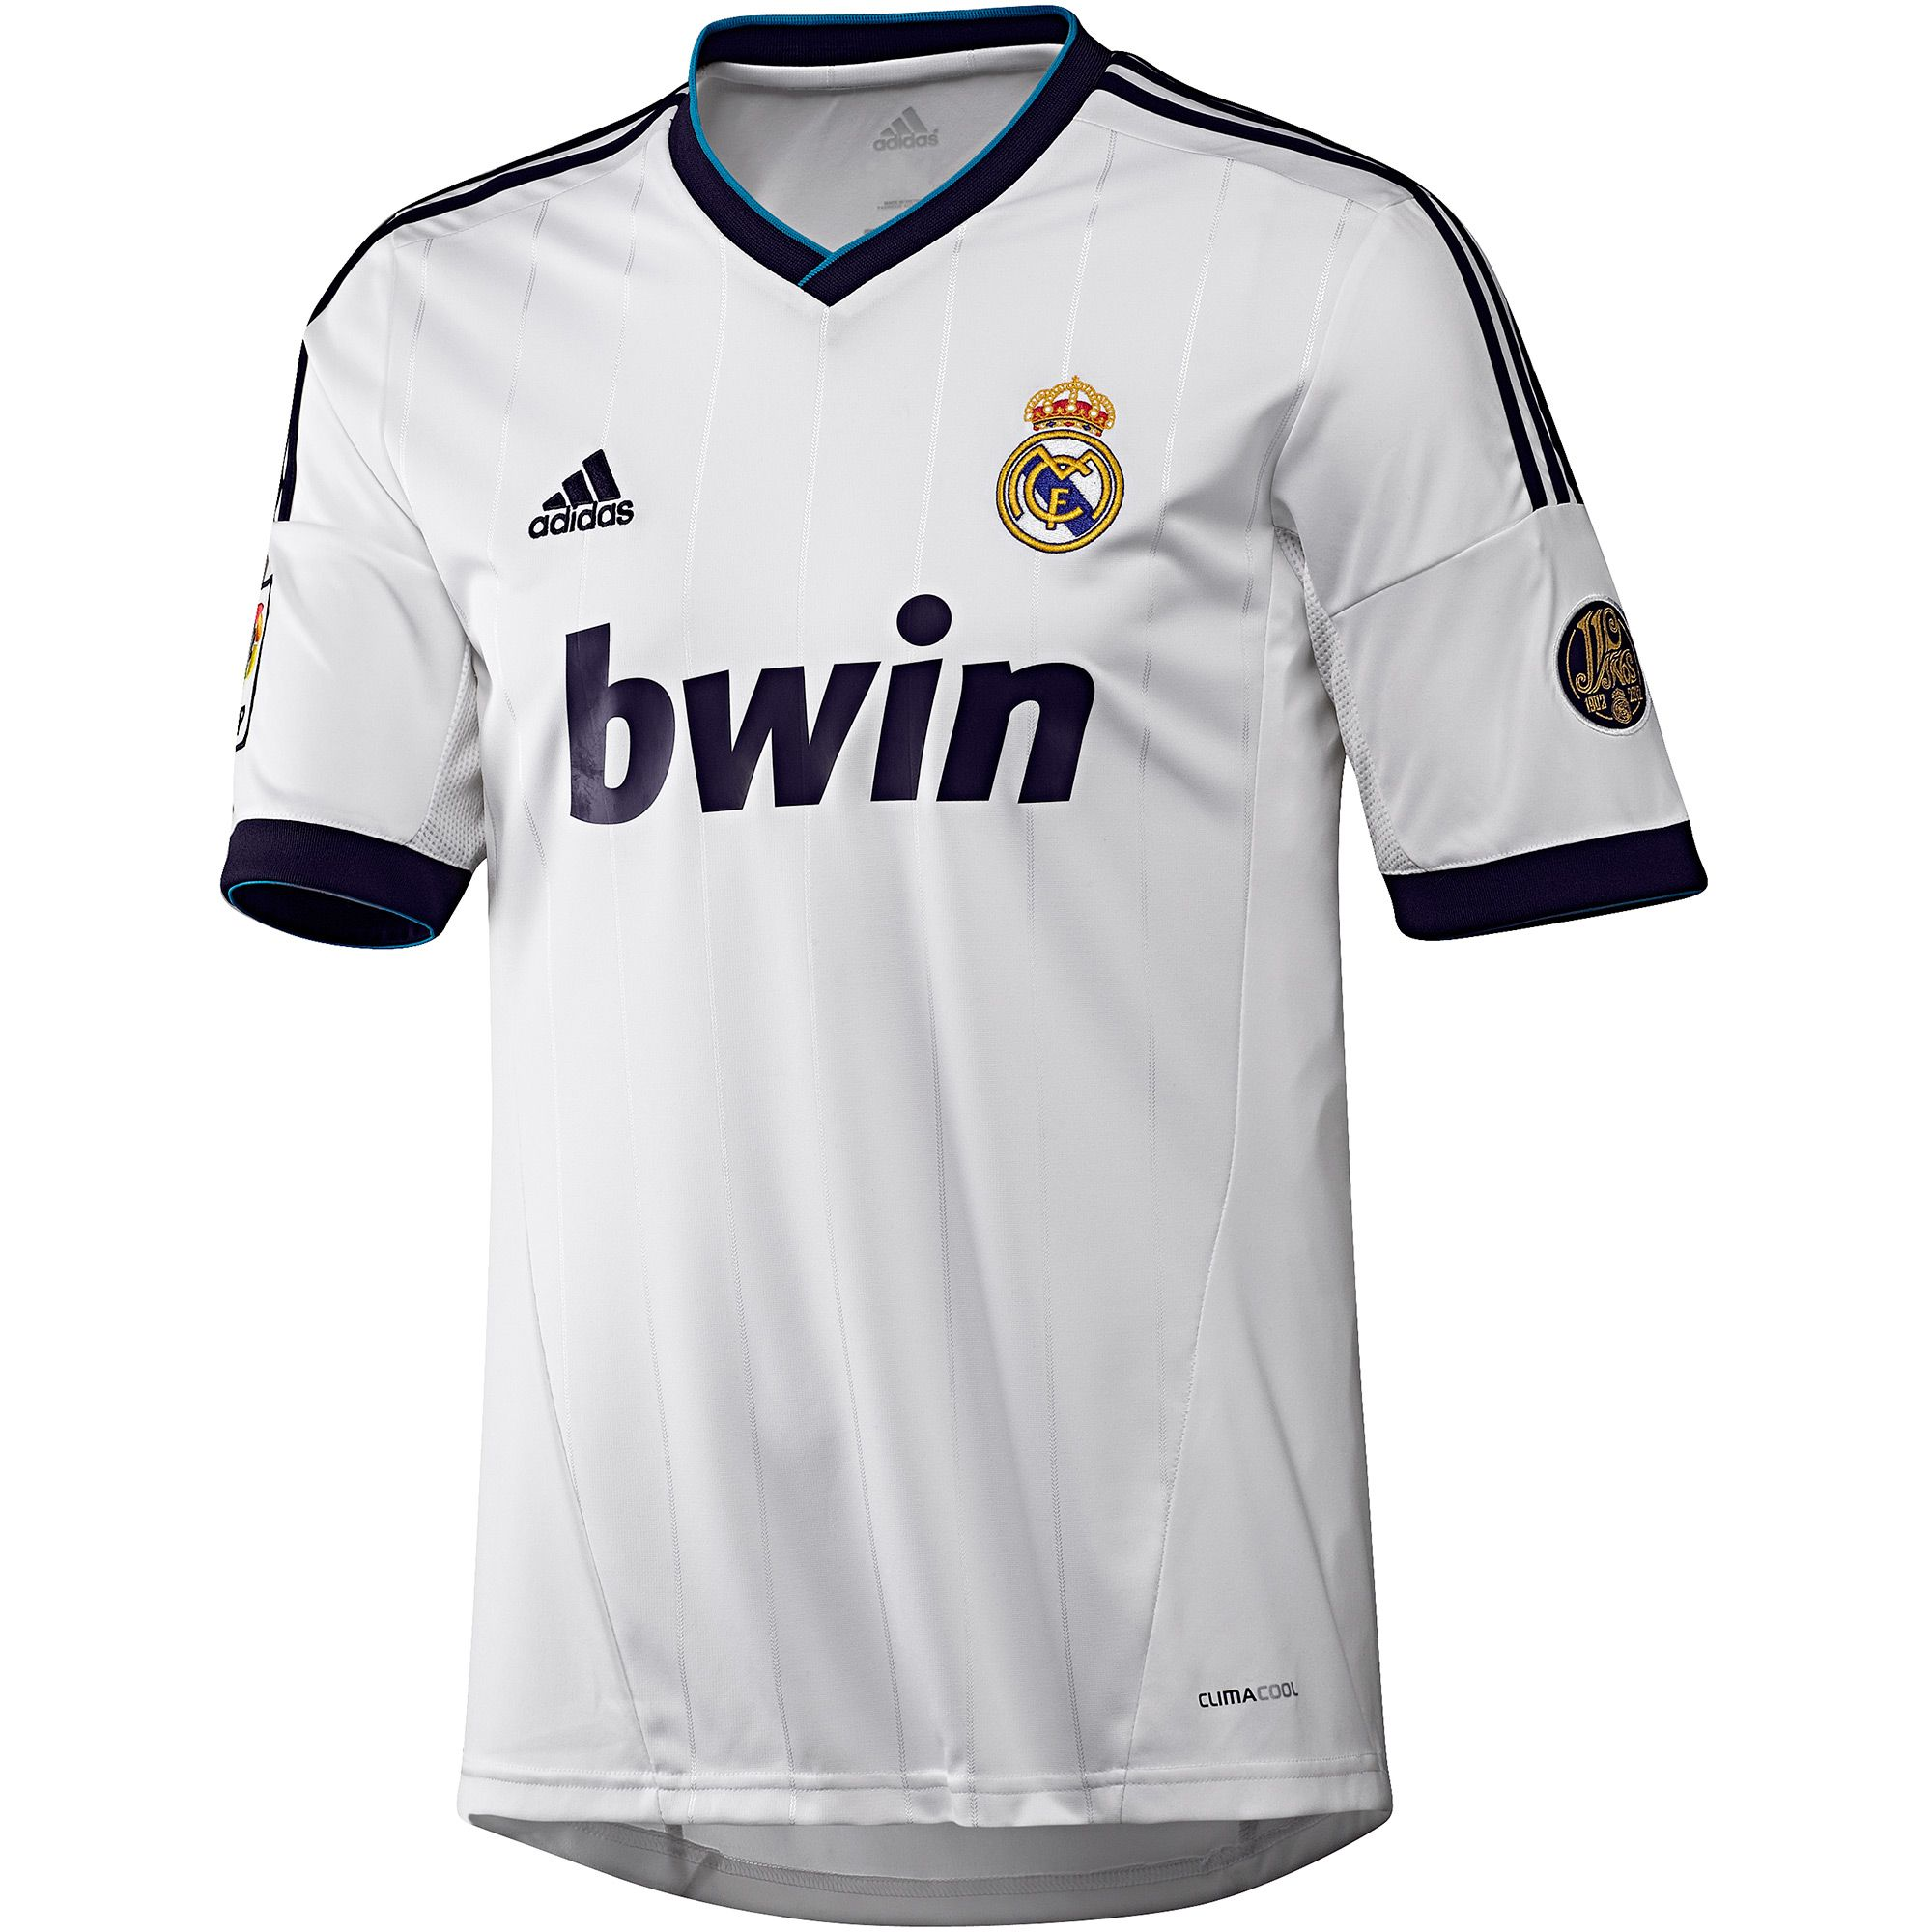 New Real Madrid Jersey by Adidas for La Liga Season now in store at  Vancouver BC soccer store North America Sports. Call for your size today!